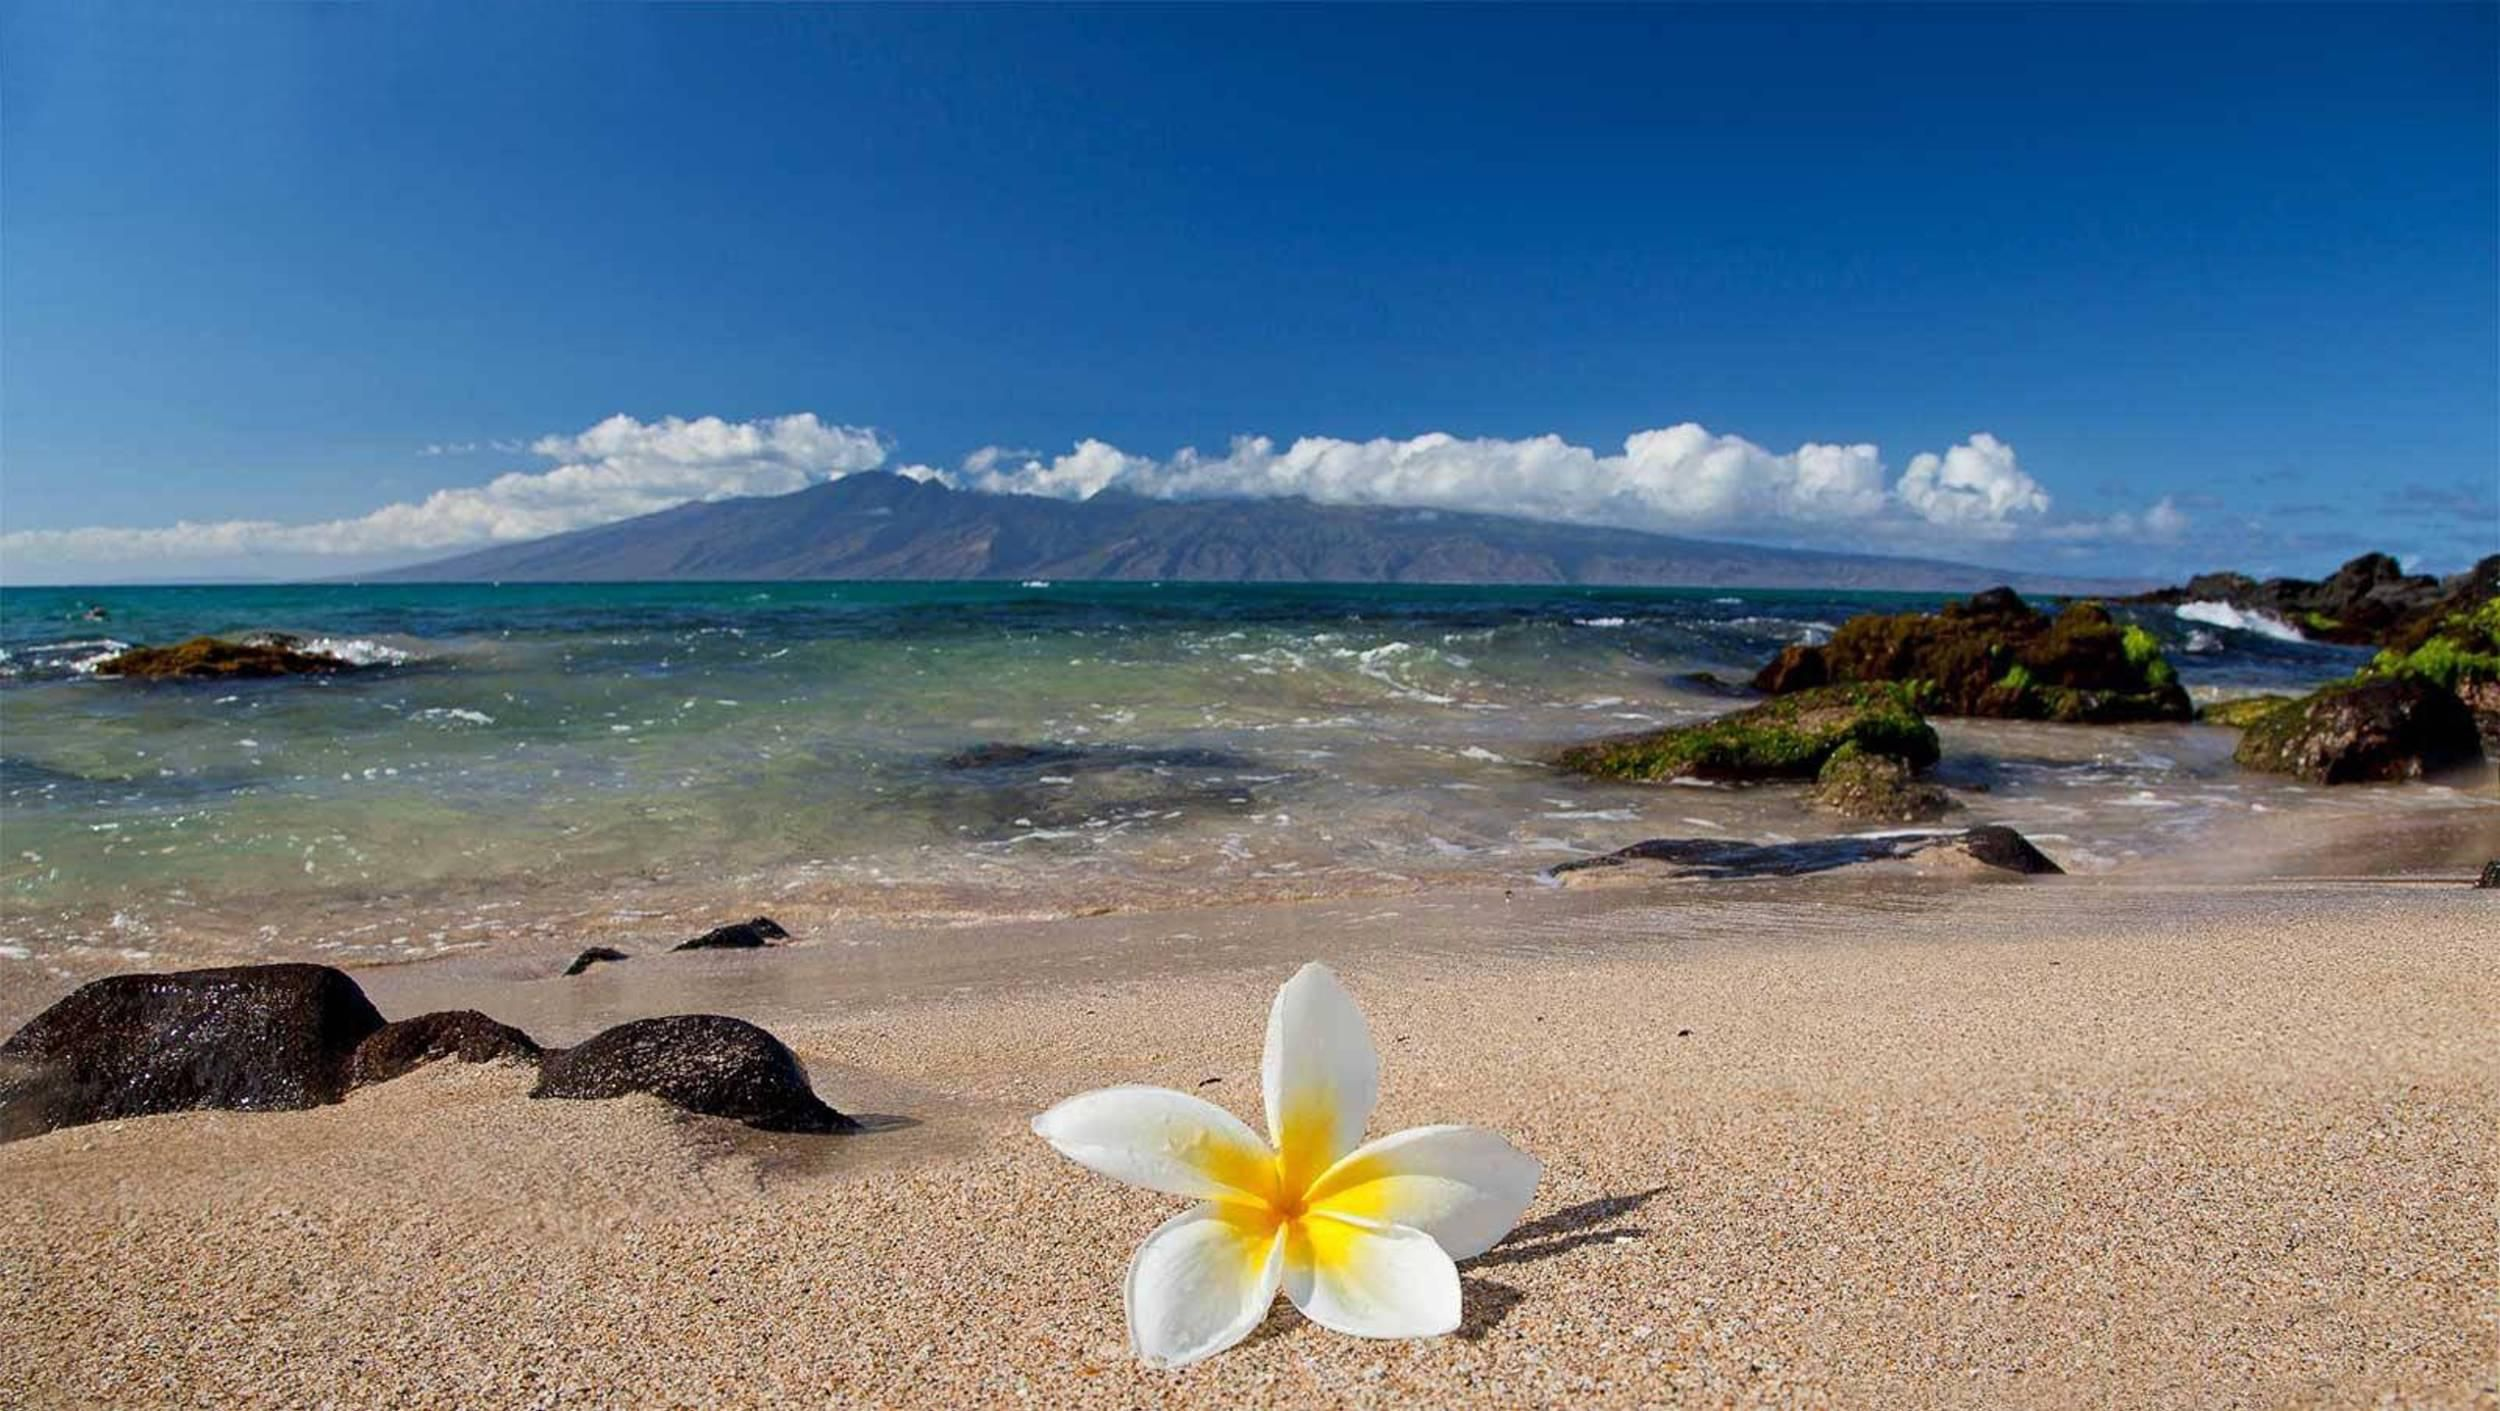 Hawaii Flower Wallpapers High Quality For Desktop